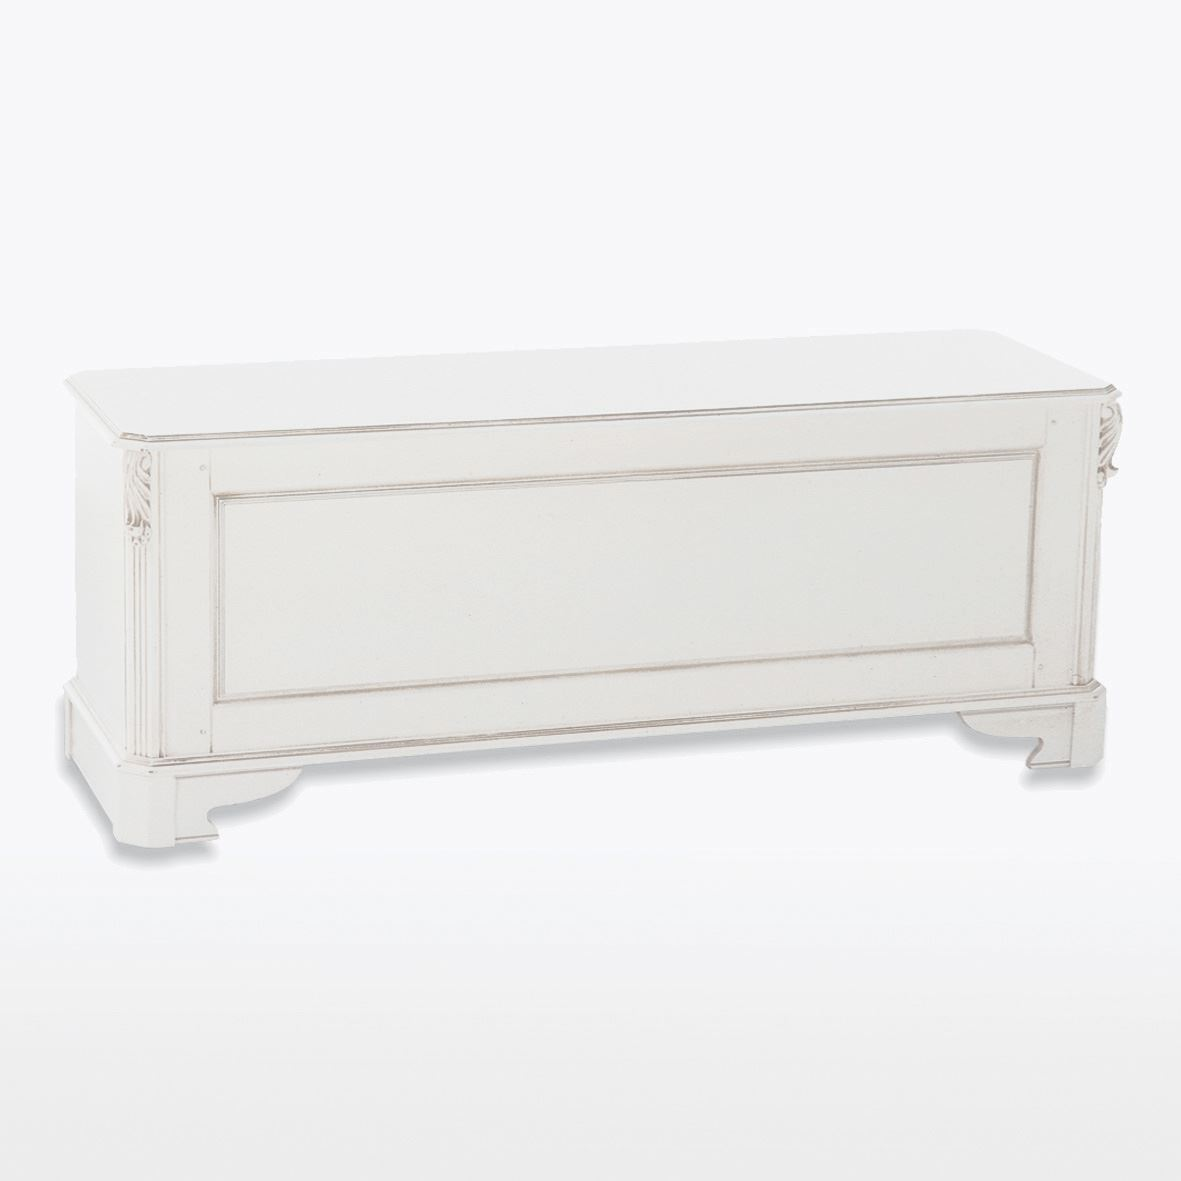 Amore' - Large Blanket Chest - ABJ234